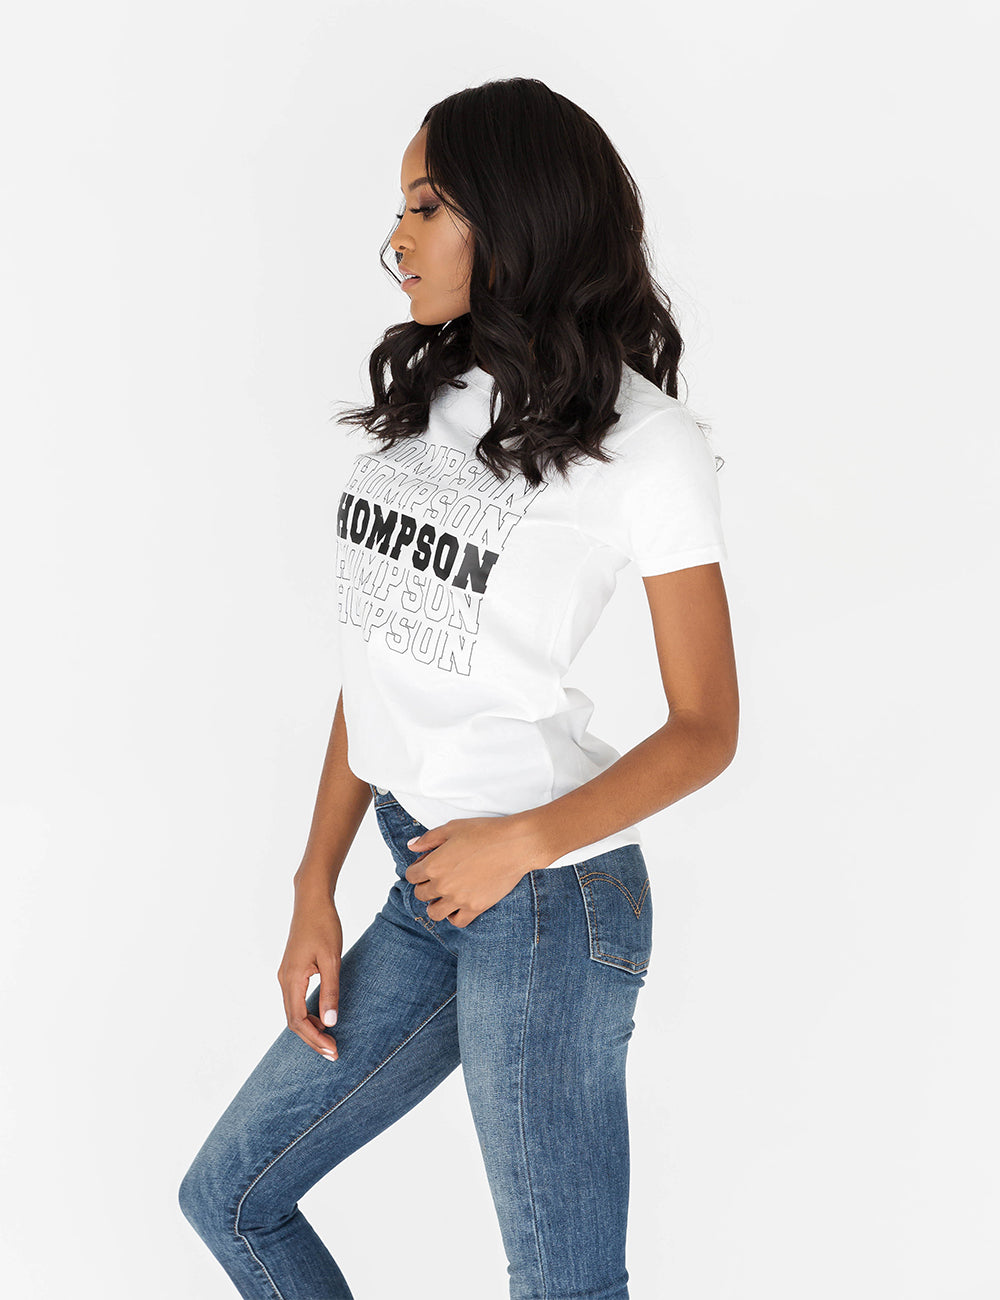 Name Dropper Tee